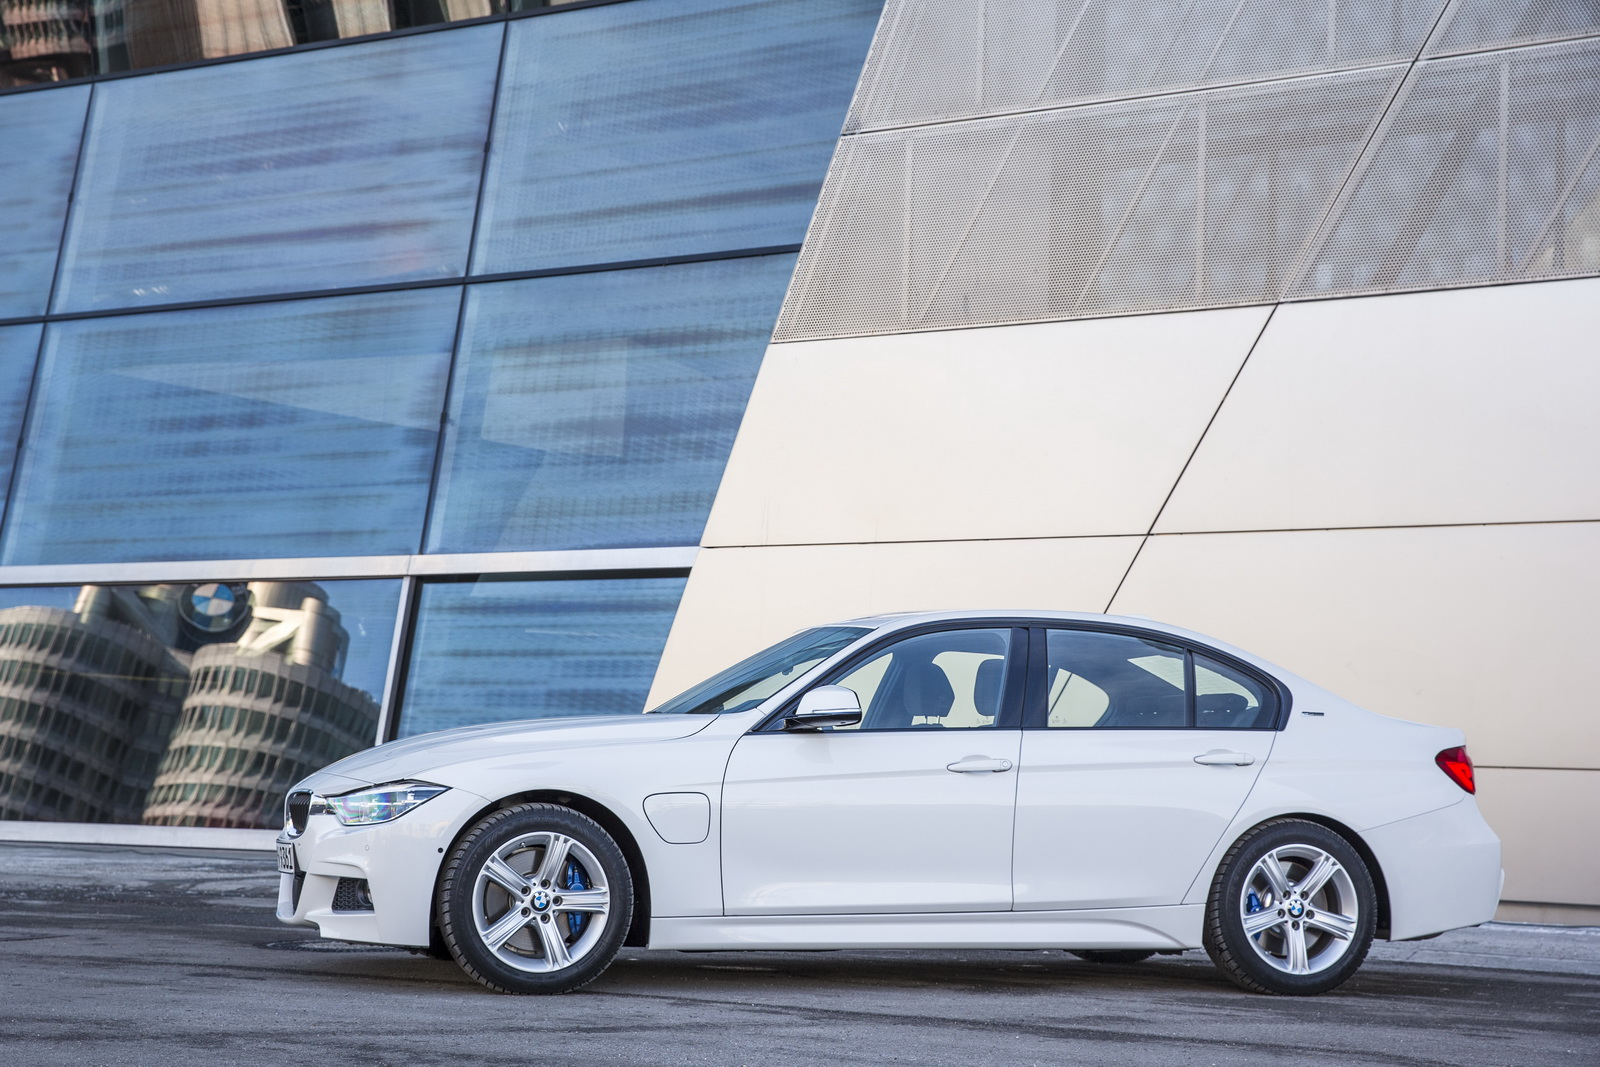 New bmw 330e phev detailed in new gallery 89 pics